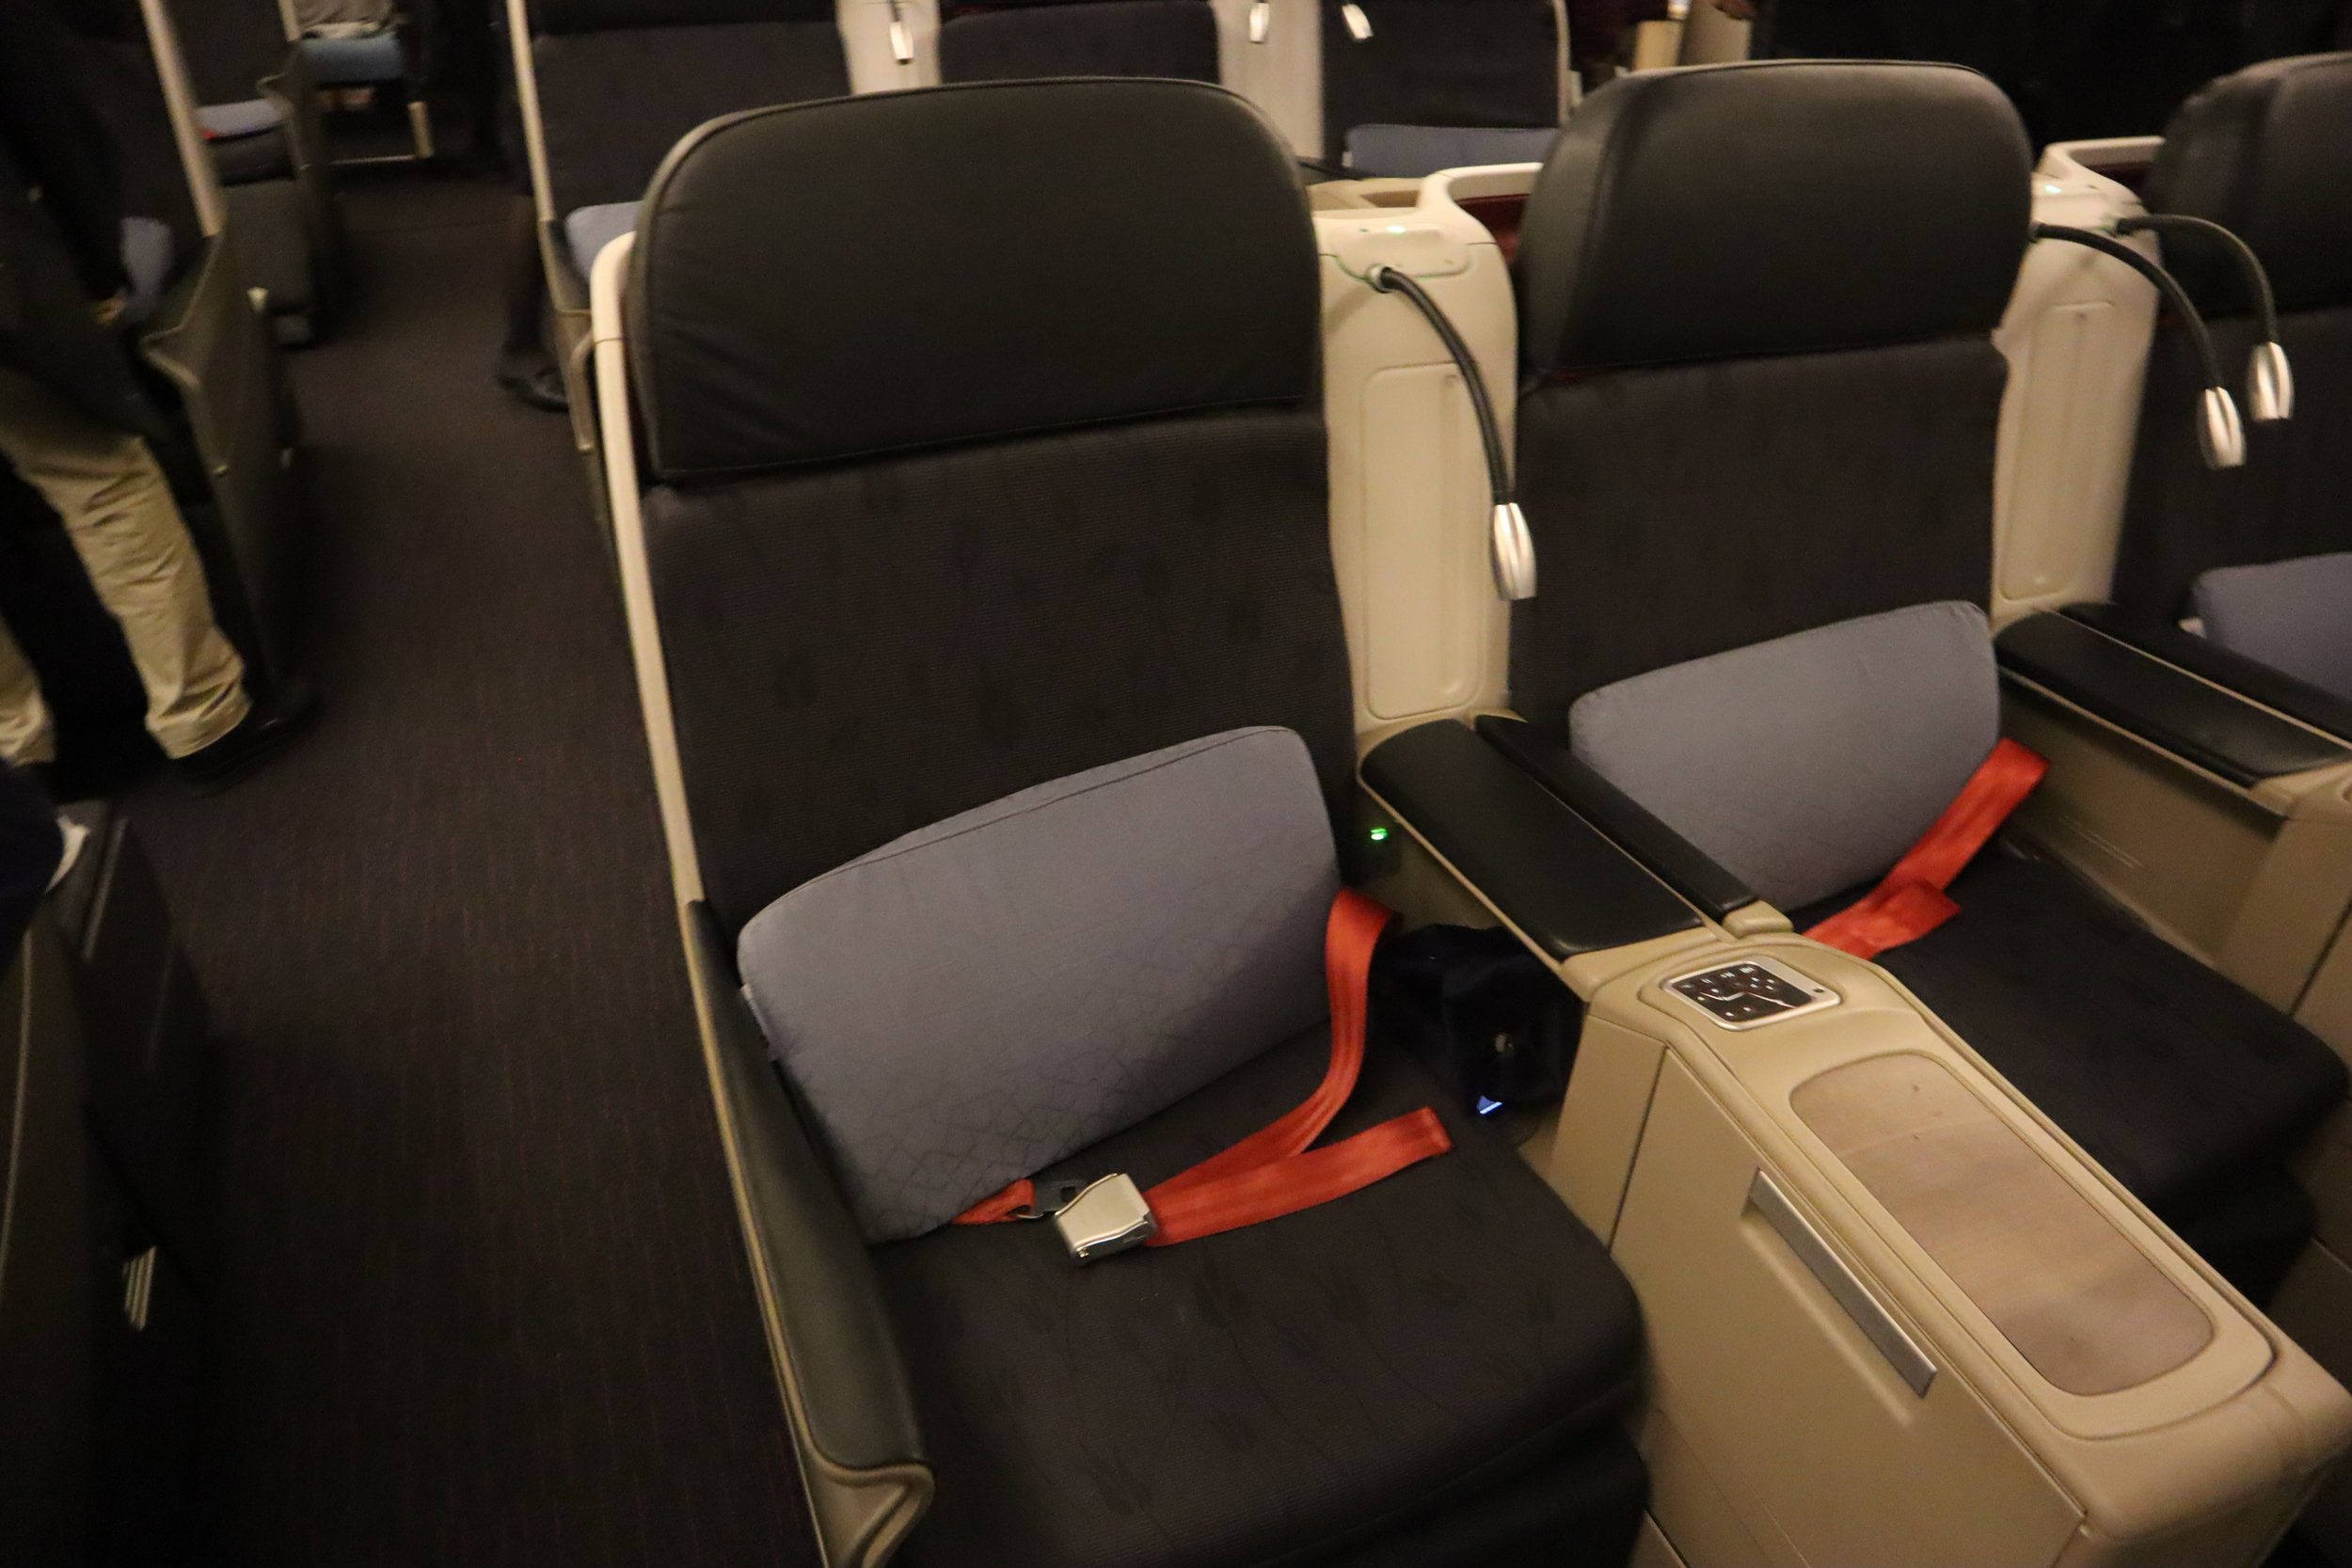 Turkish Airlines 777 business class – Seat 5G